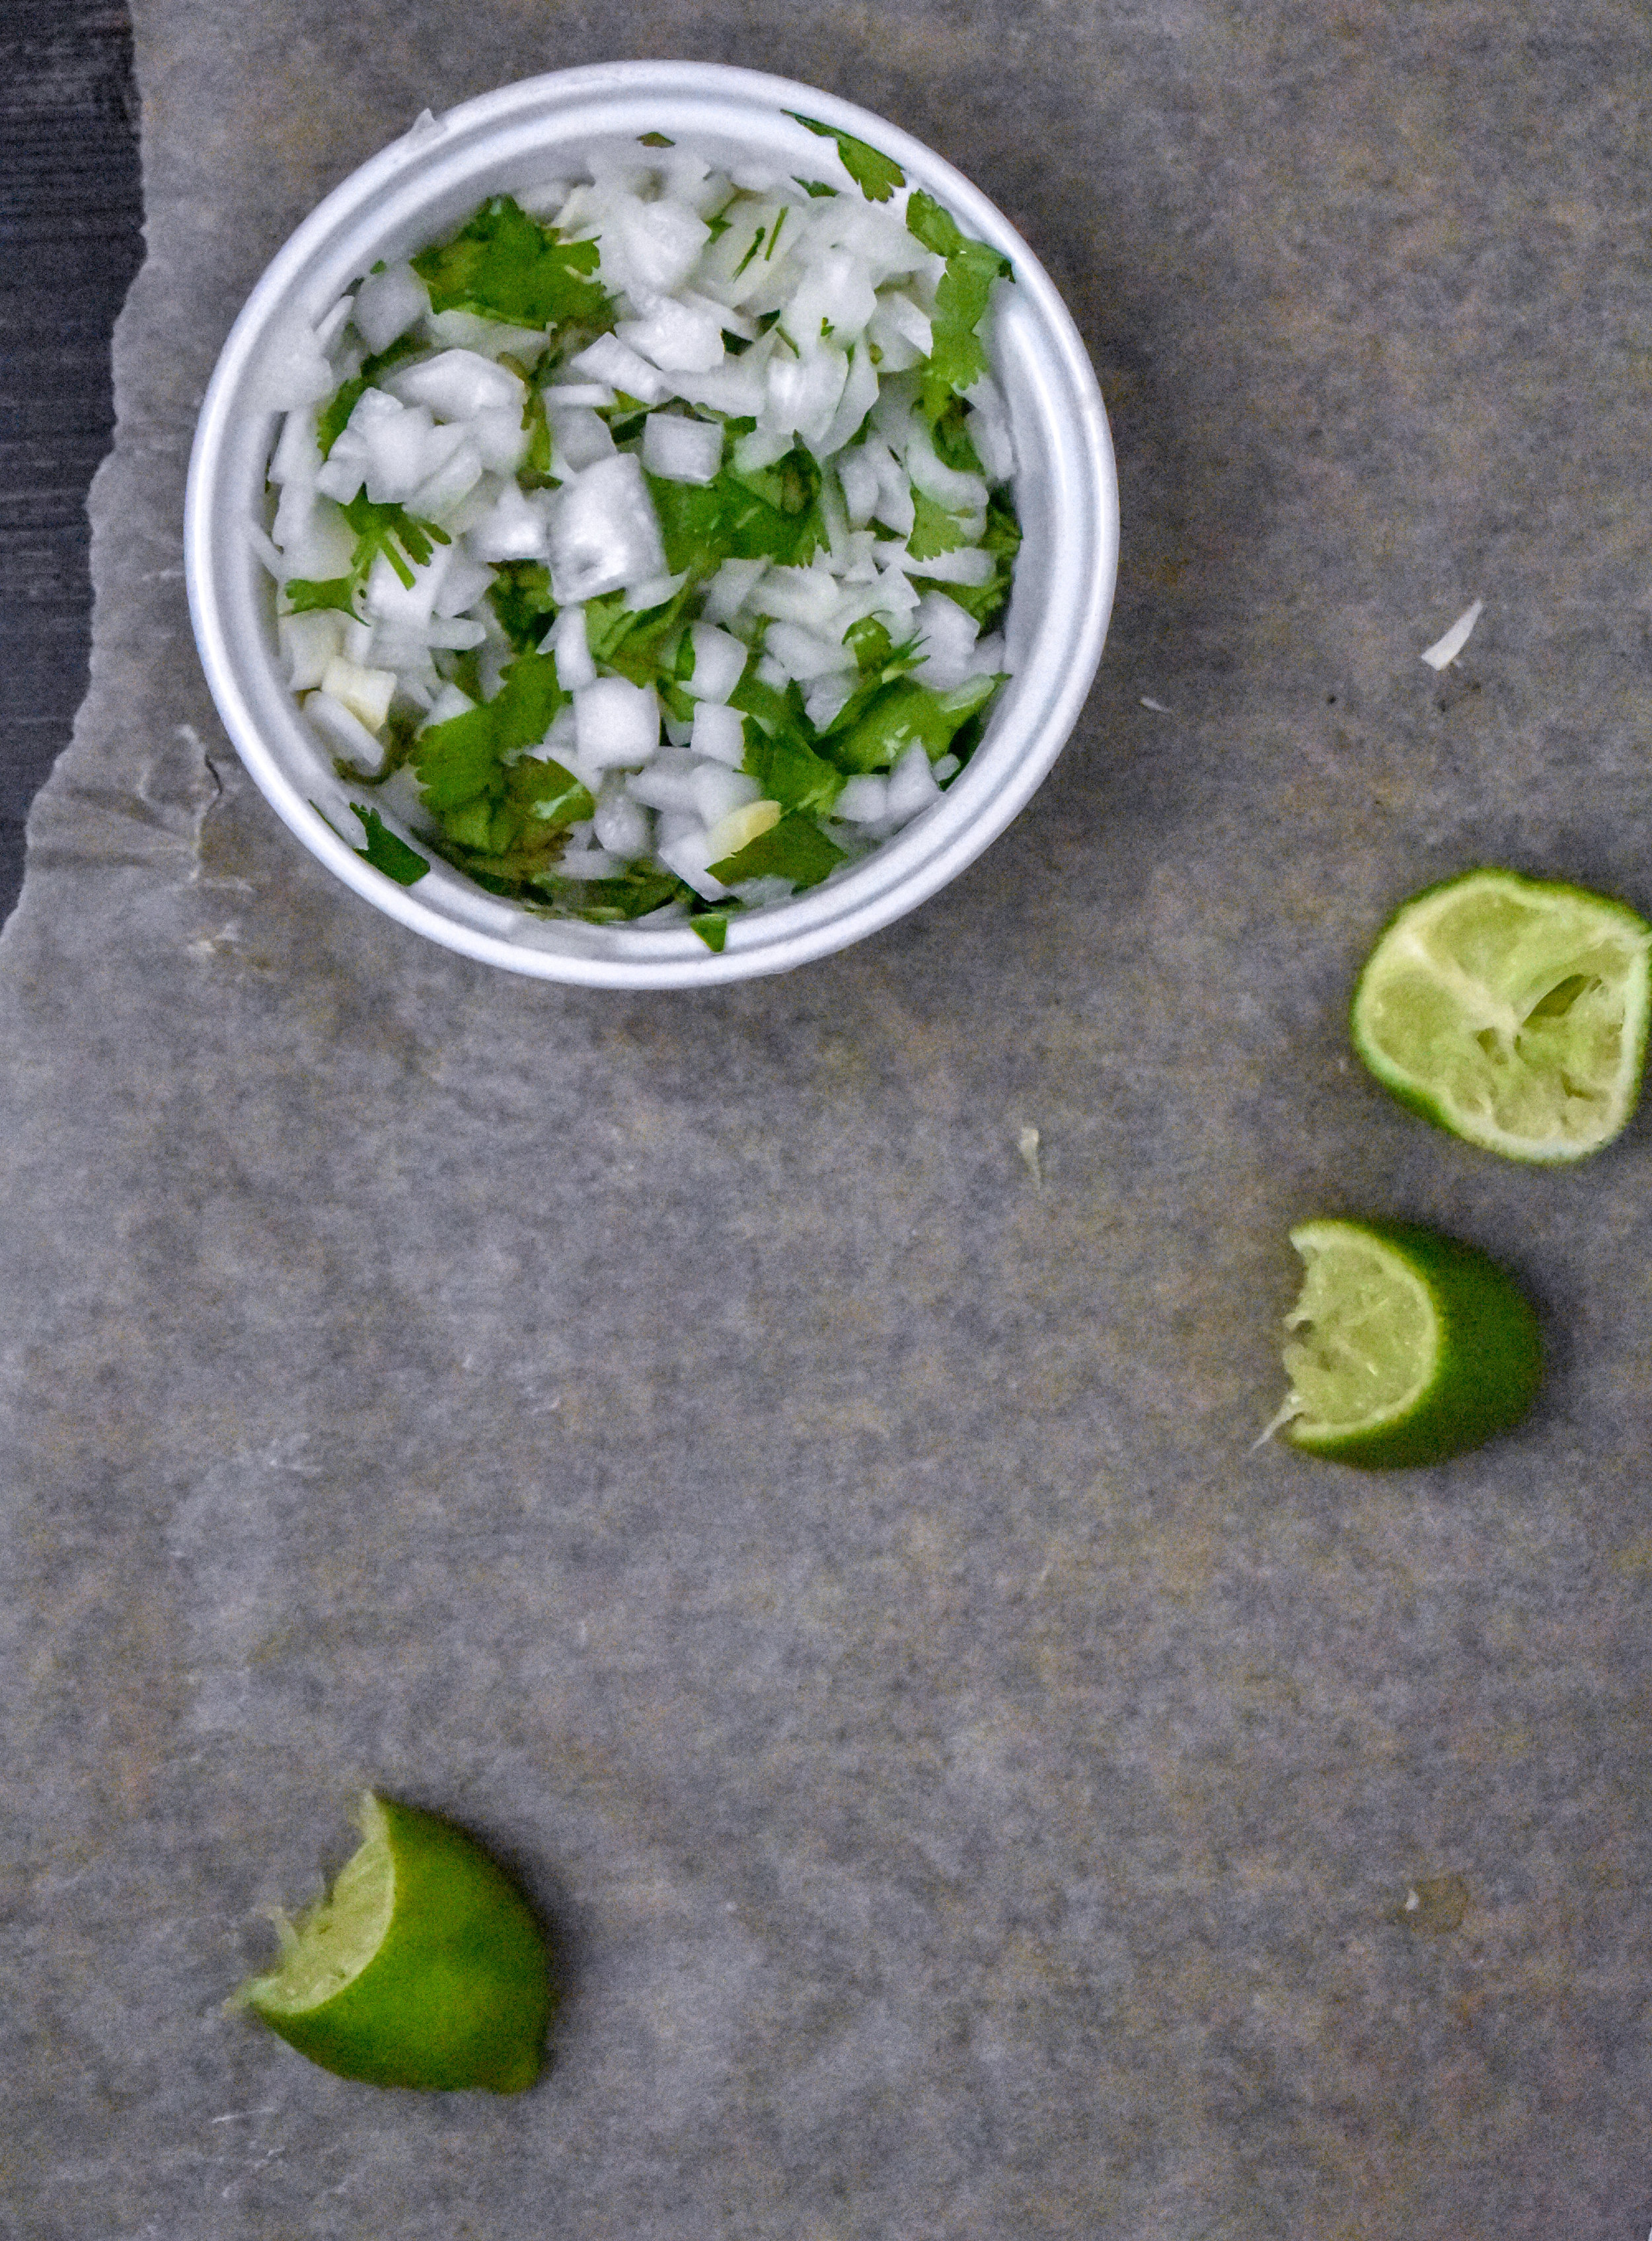 6. Lastly, dice some onions with cilantro and lime. Mix and set aside.